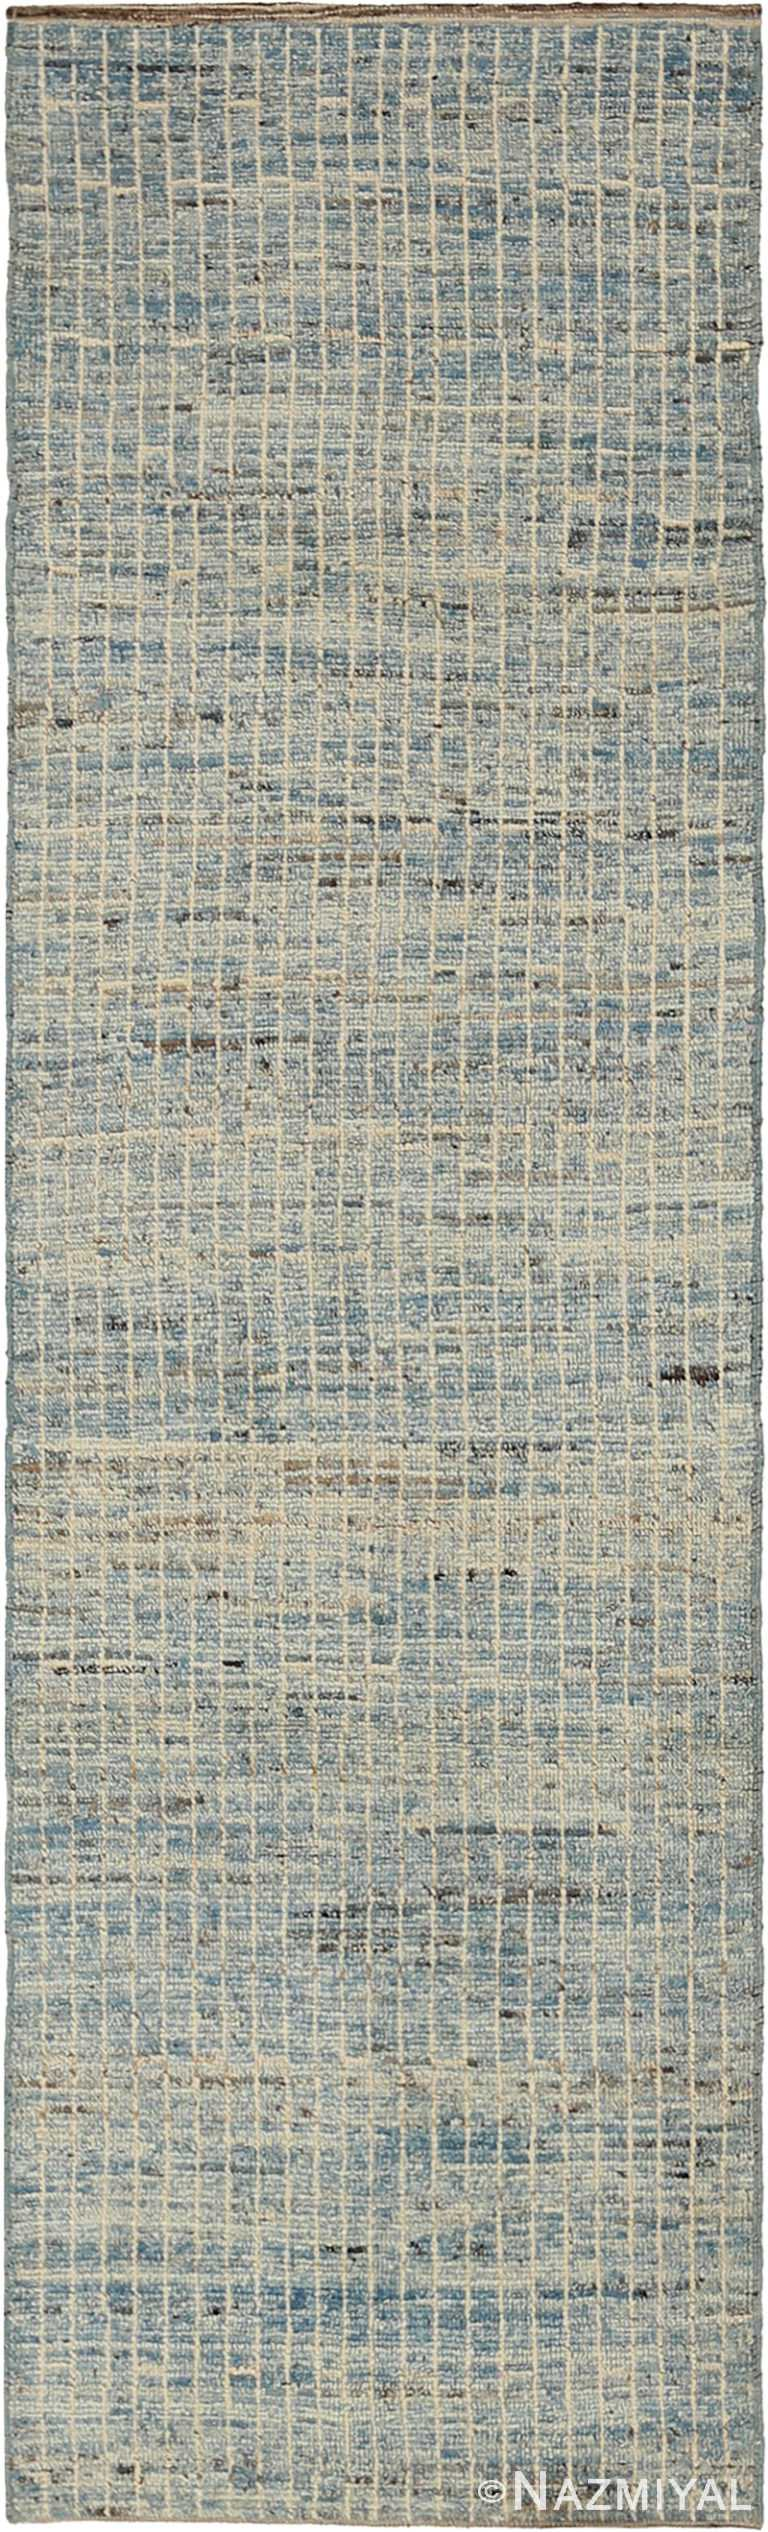 Soft Ivory and Light Blue Modern Moroccan Style Runner Rug #60327 by Nazmiyal Antique Rugs